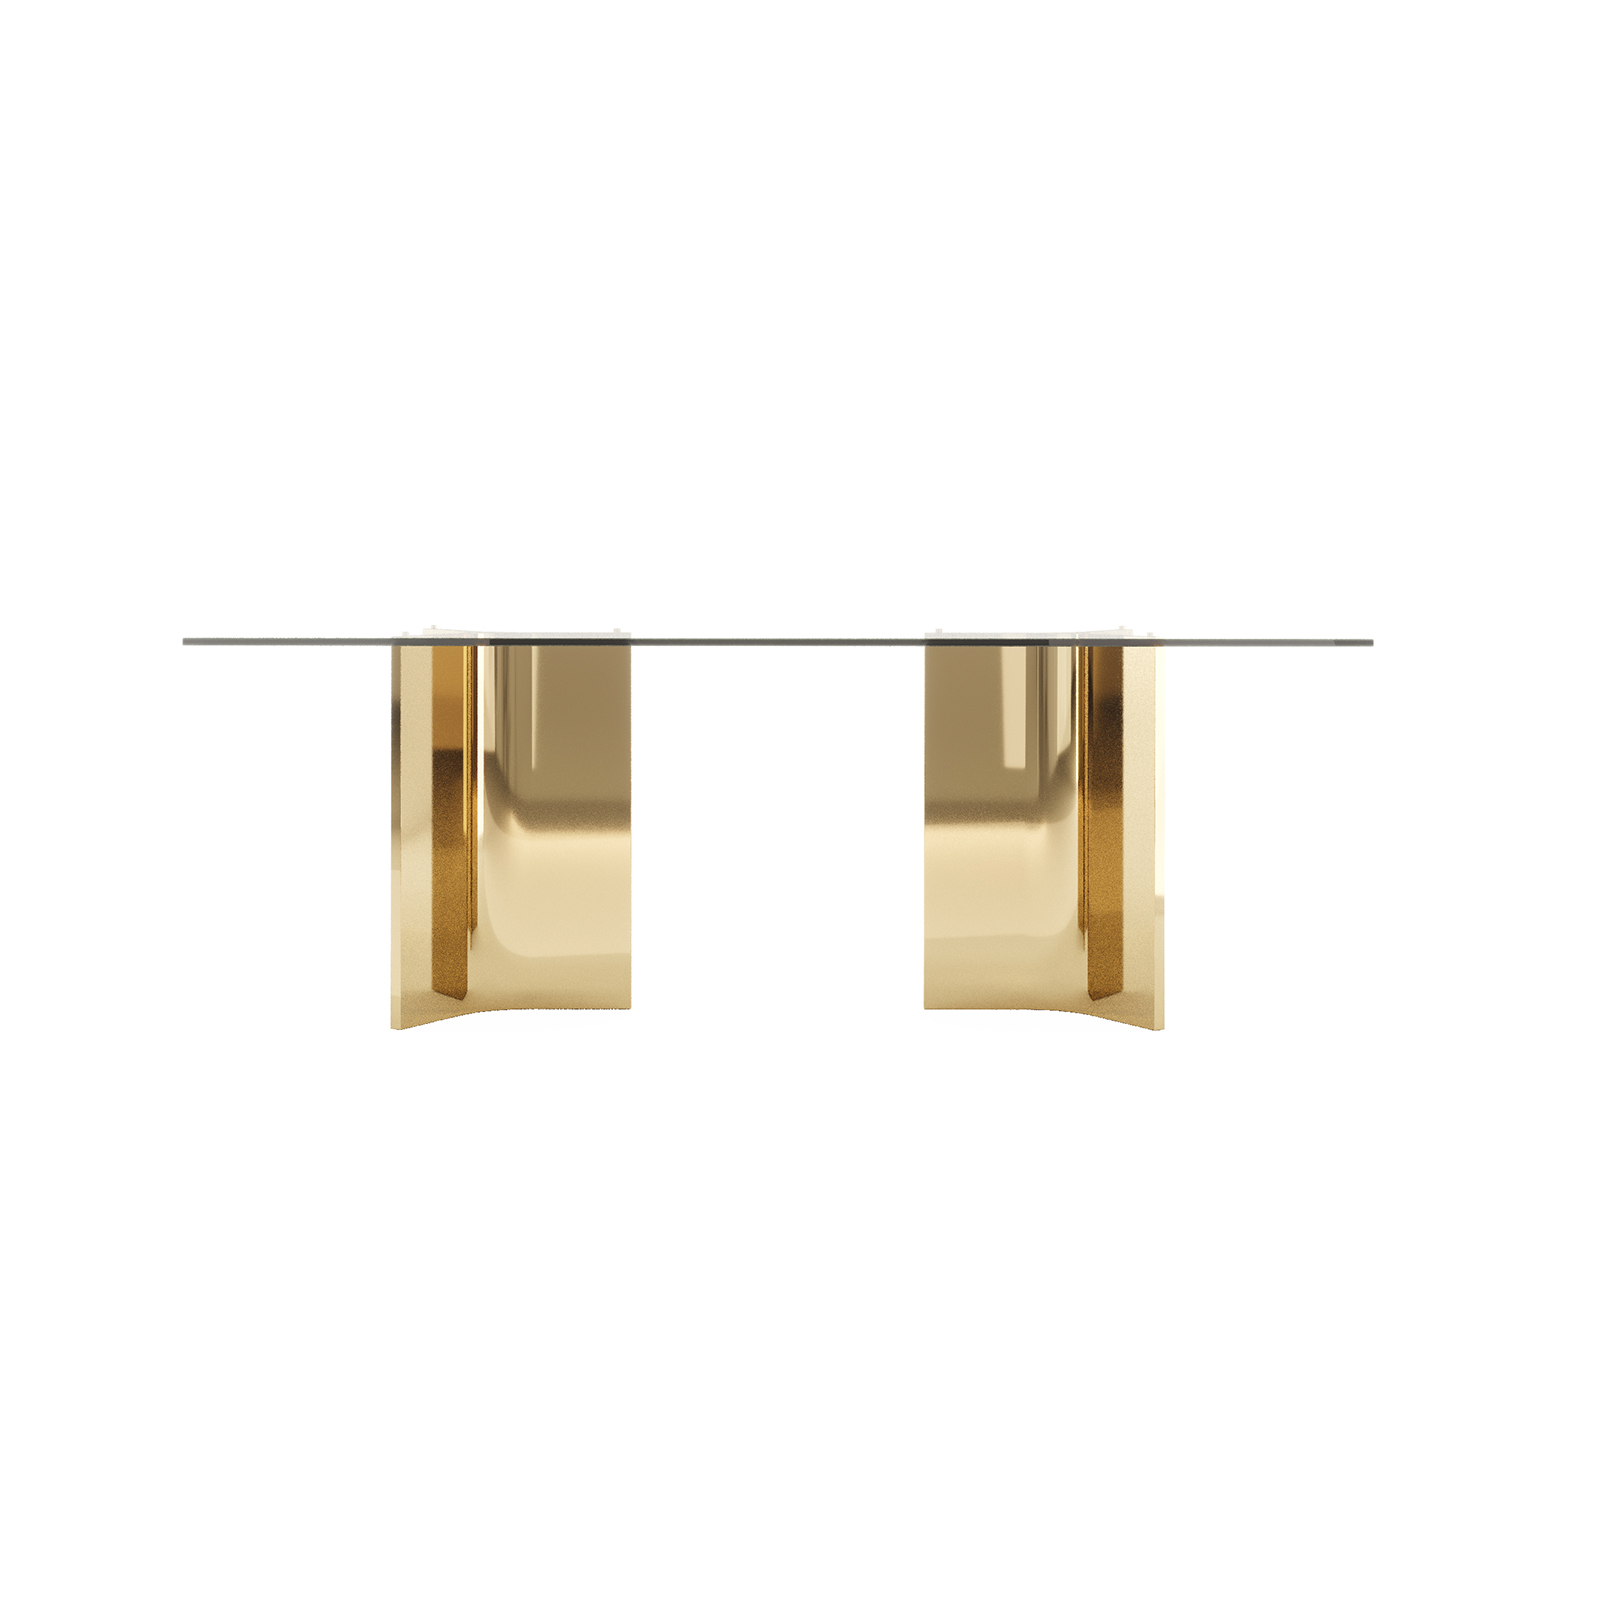 Belgravia-Dining-Table-Gold-by-Bonham-&-Bonham-01